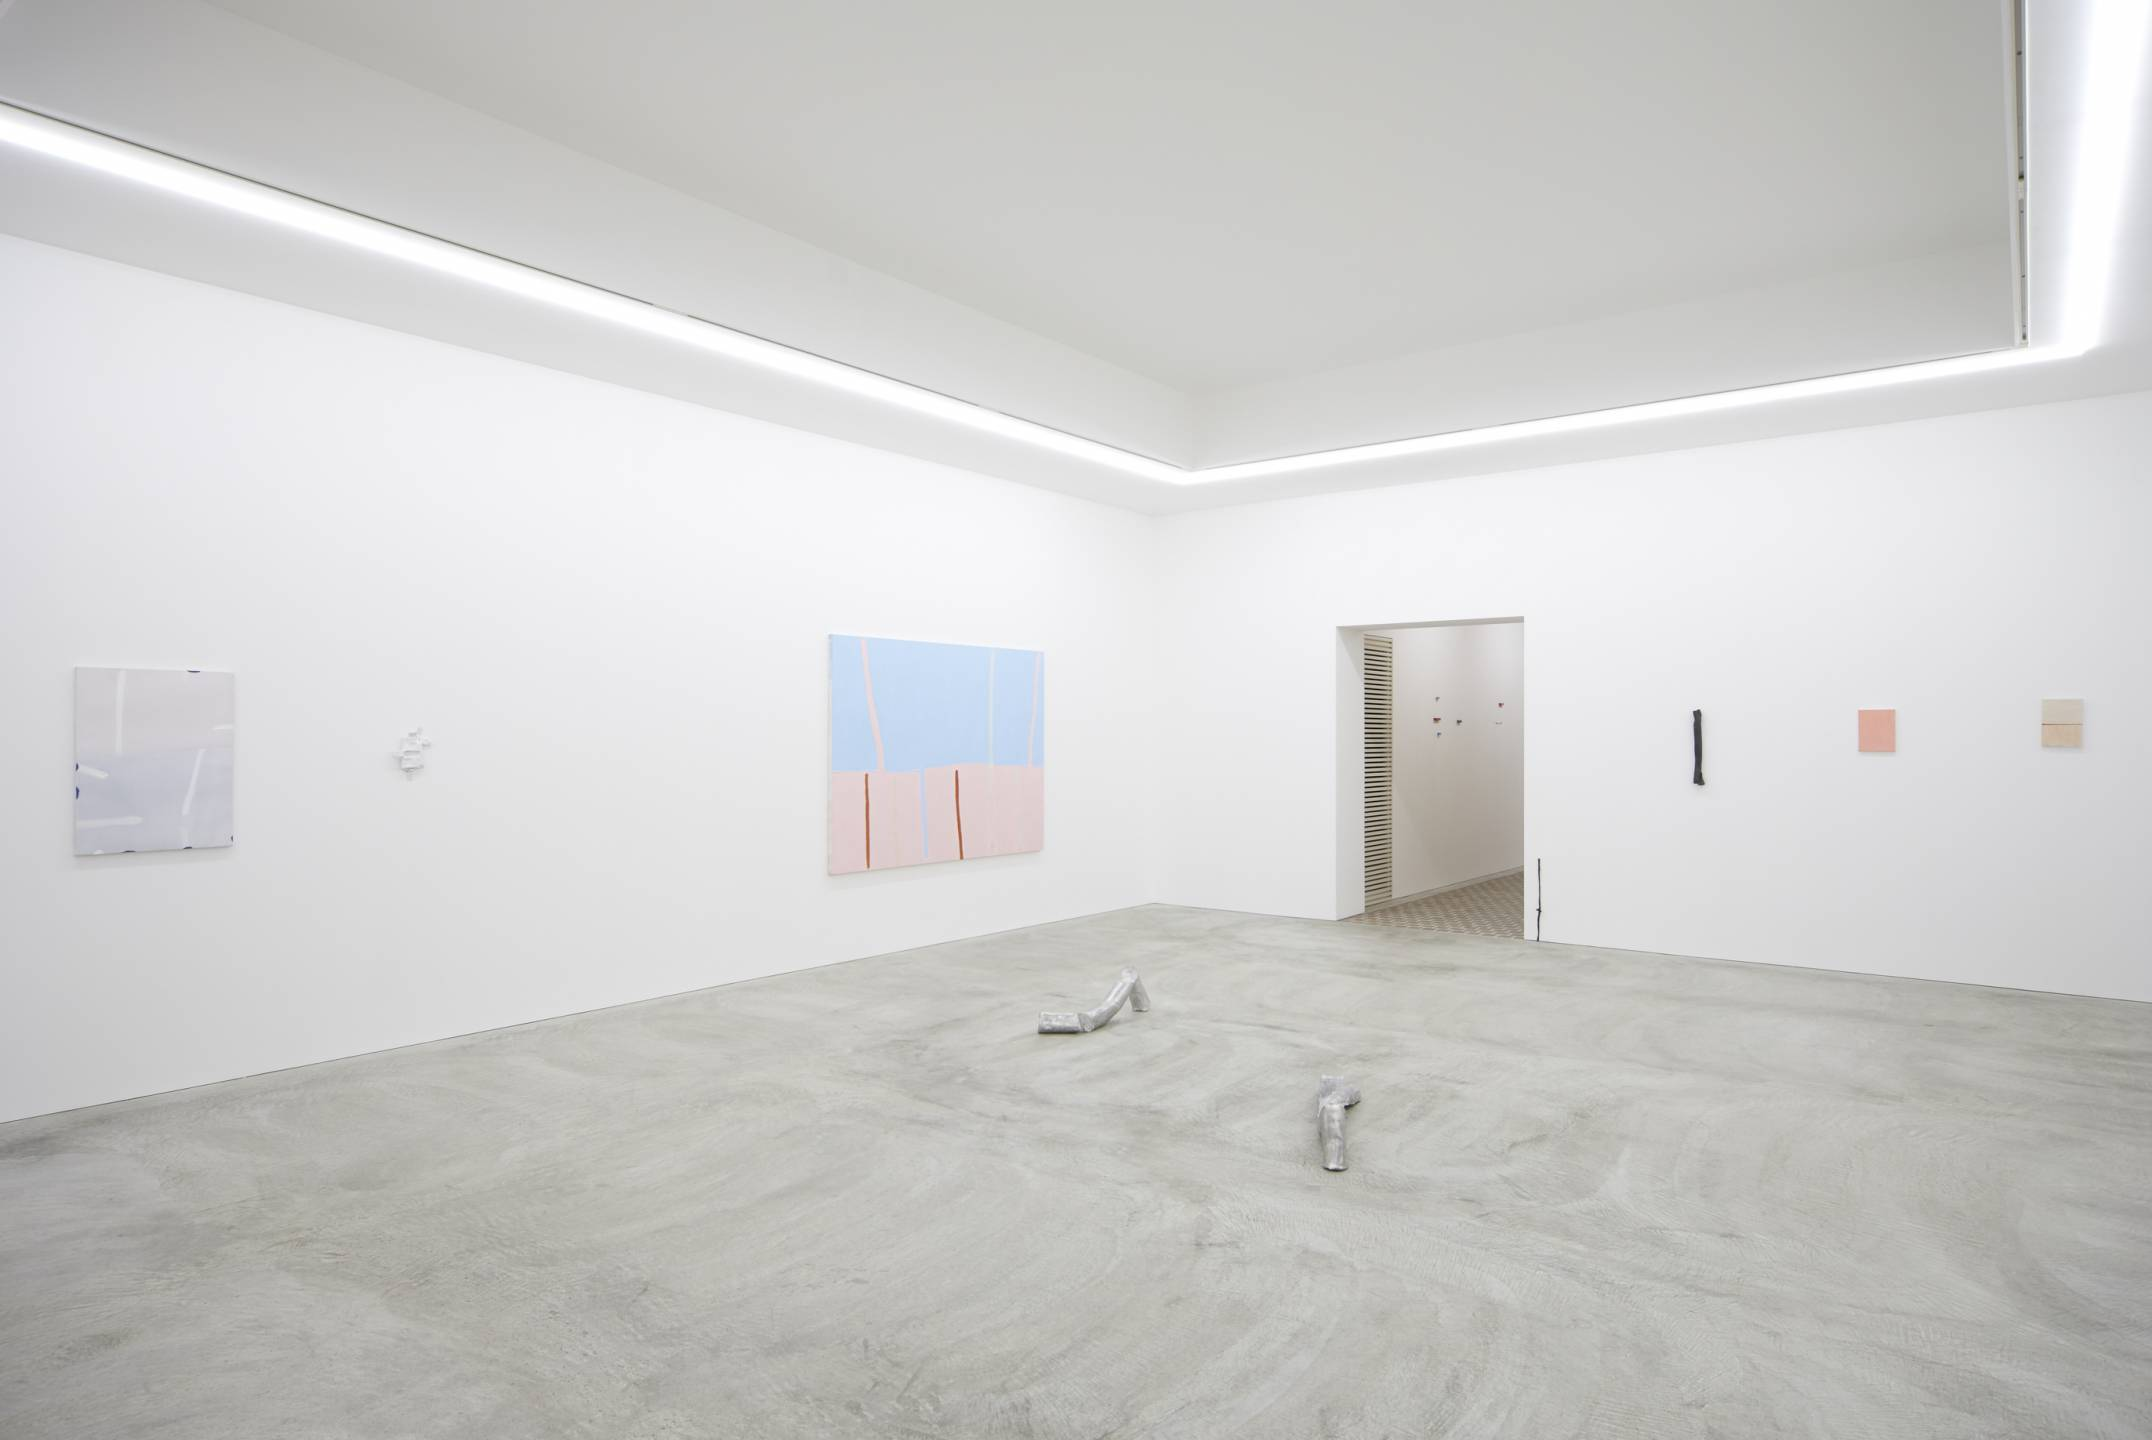 Paulo Monteiro,&nbsp;<em>The outside of distance</em>, 2017, MISAKO &amp; ROSEN and Tomio Koyama Gallery, Tokyo - Mendes Wood DM